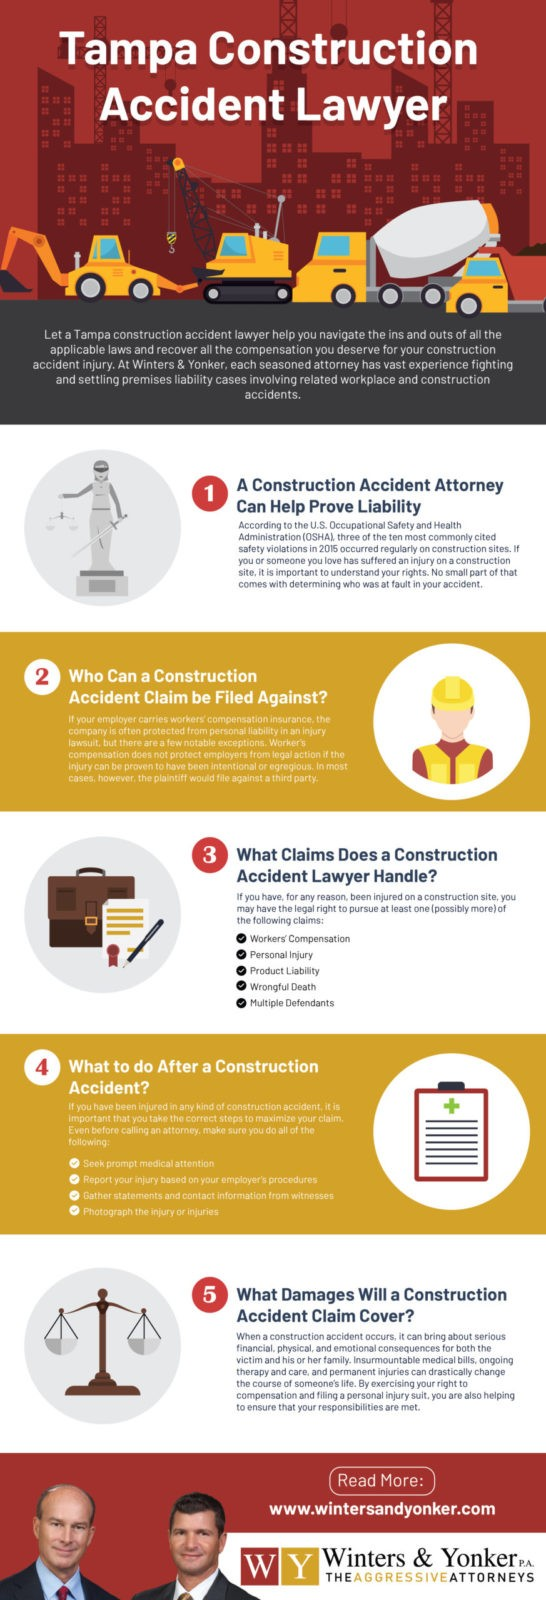 Tampa Construction Accident Lawyer 1